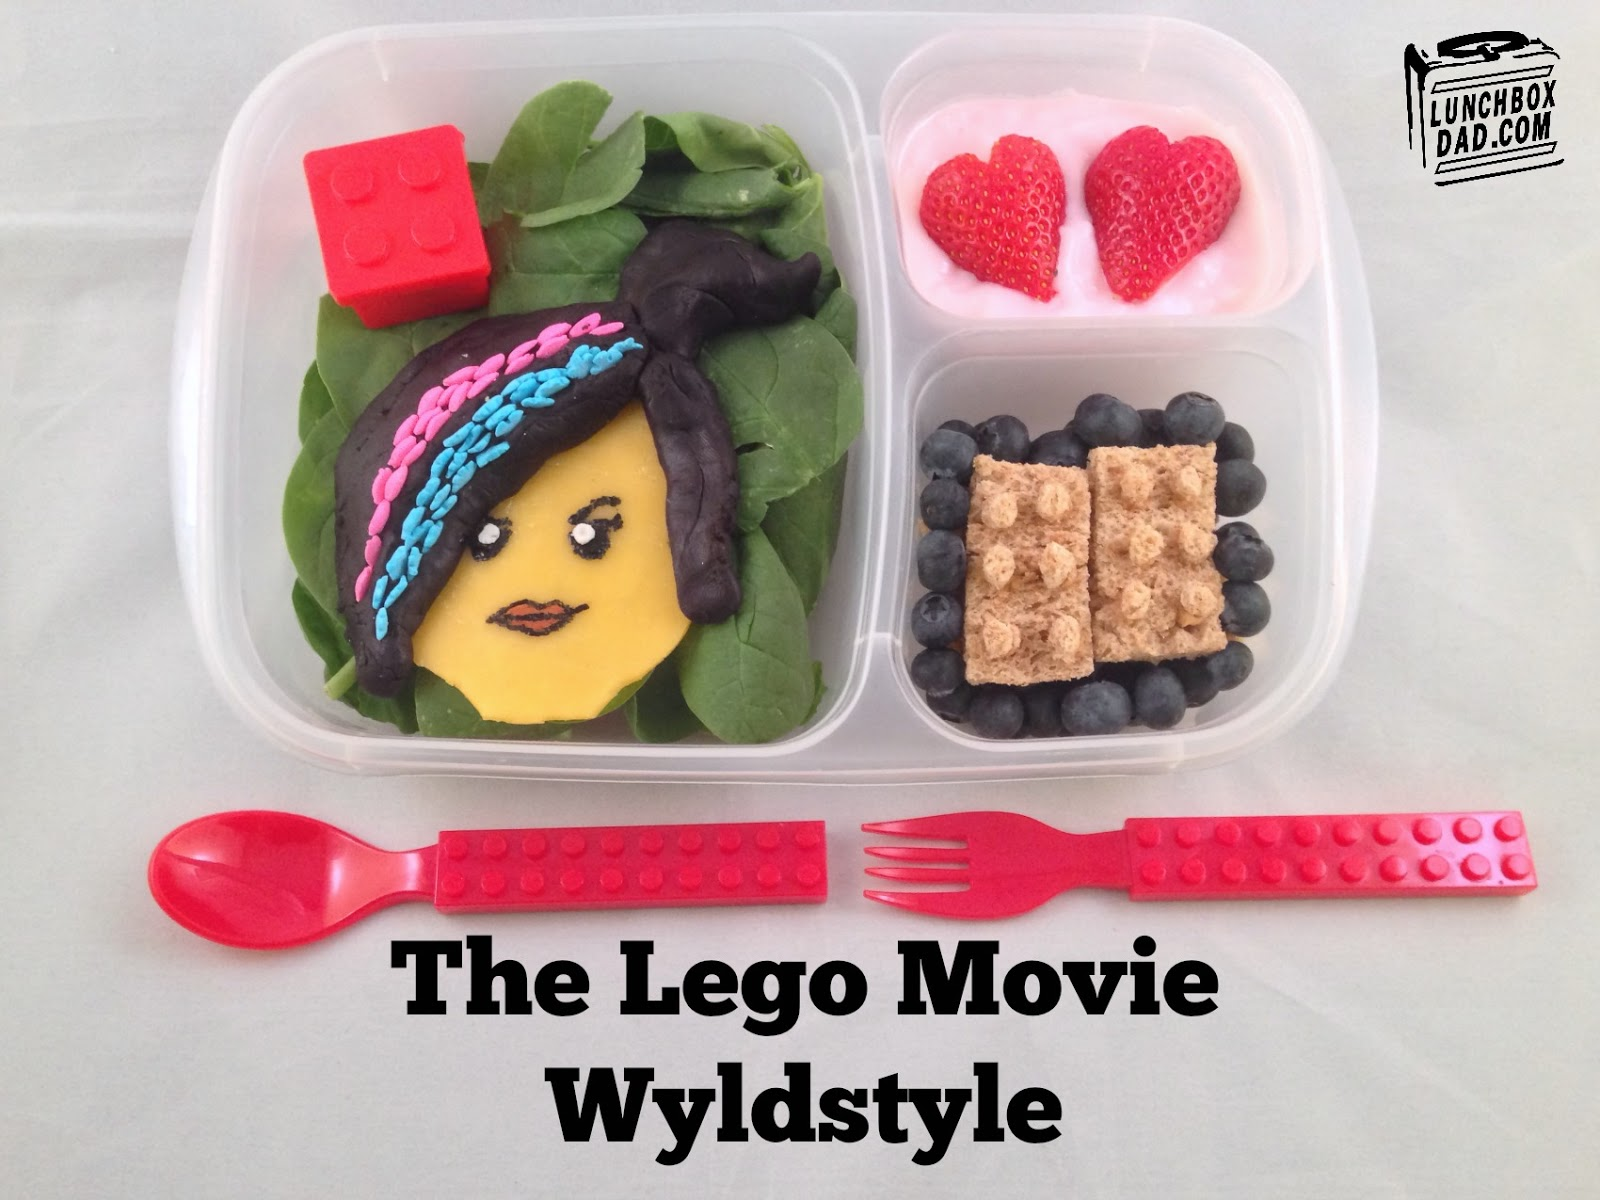 Lego Movie Wyldstyle Lunch